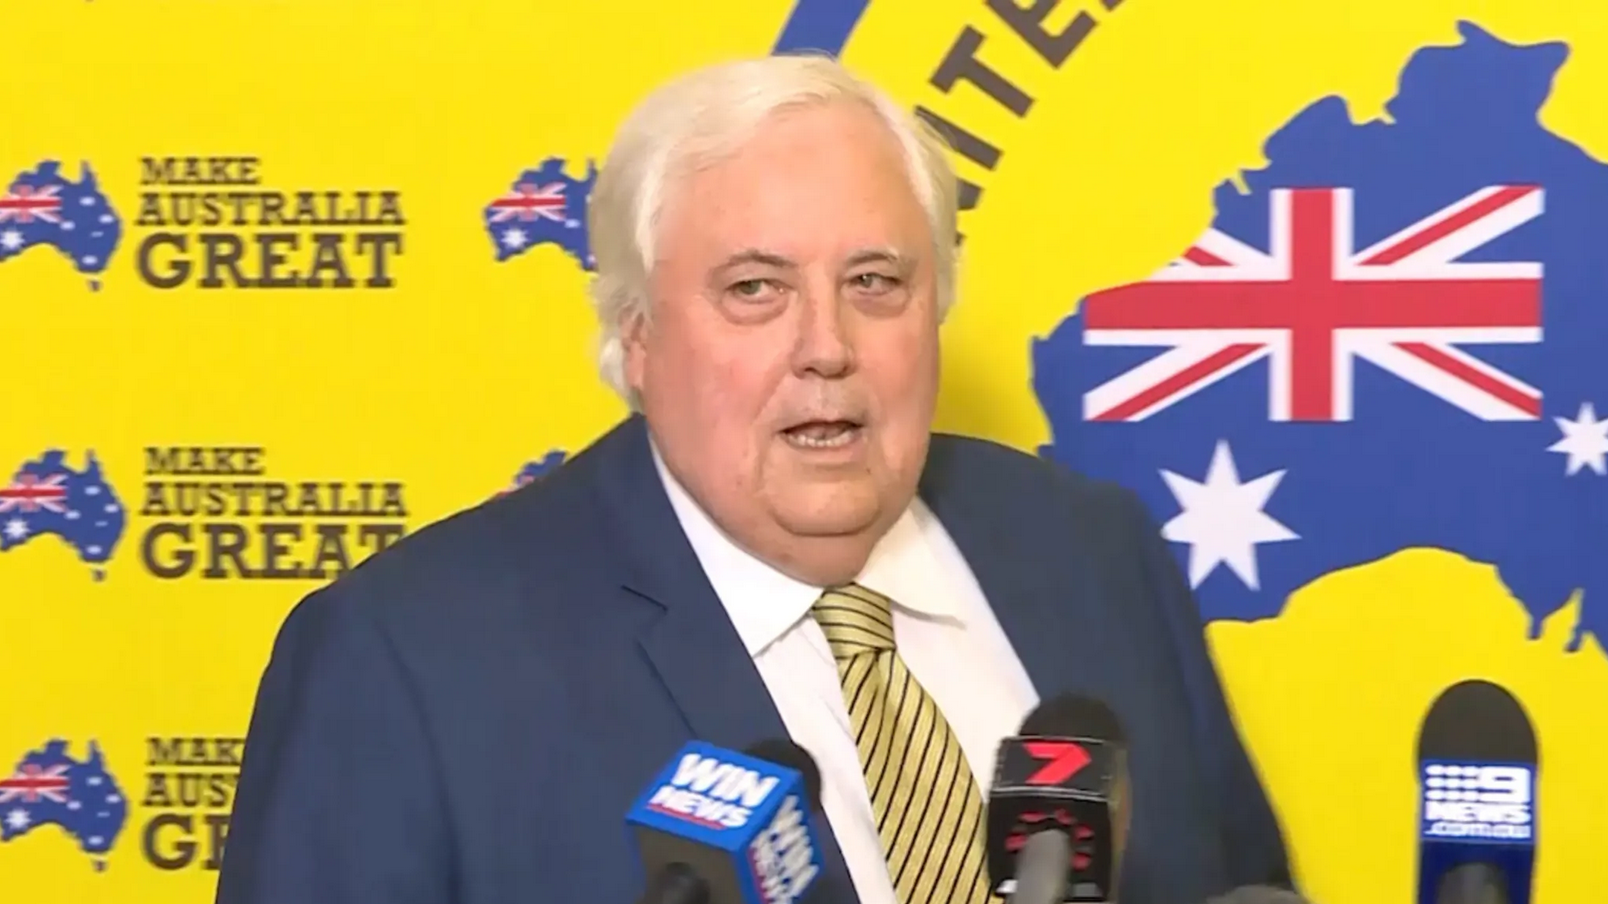 Clive Palmer campaigns for the United Australia Party. Credit: ninevms